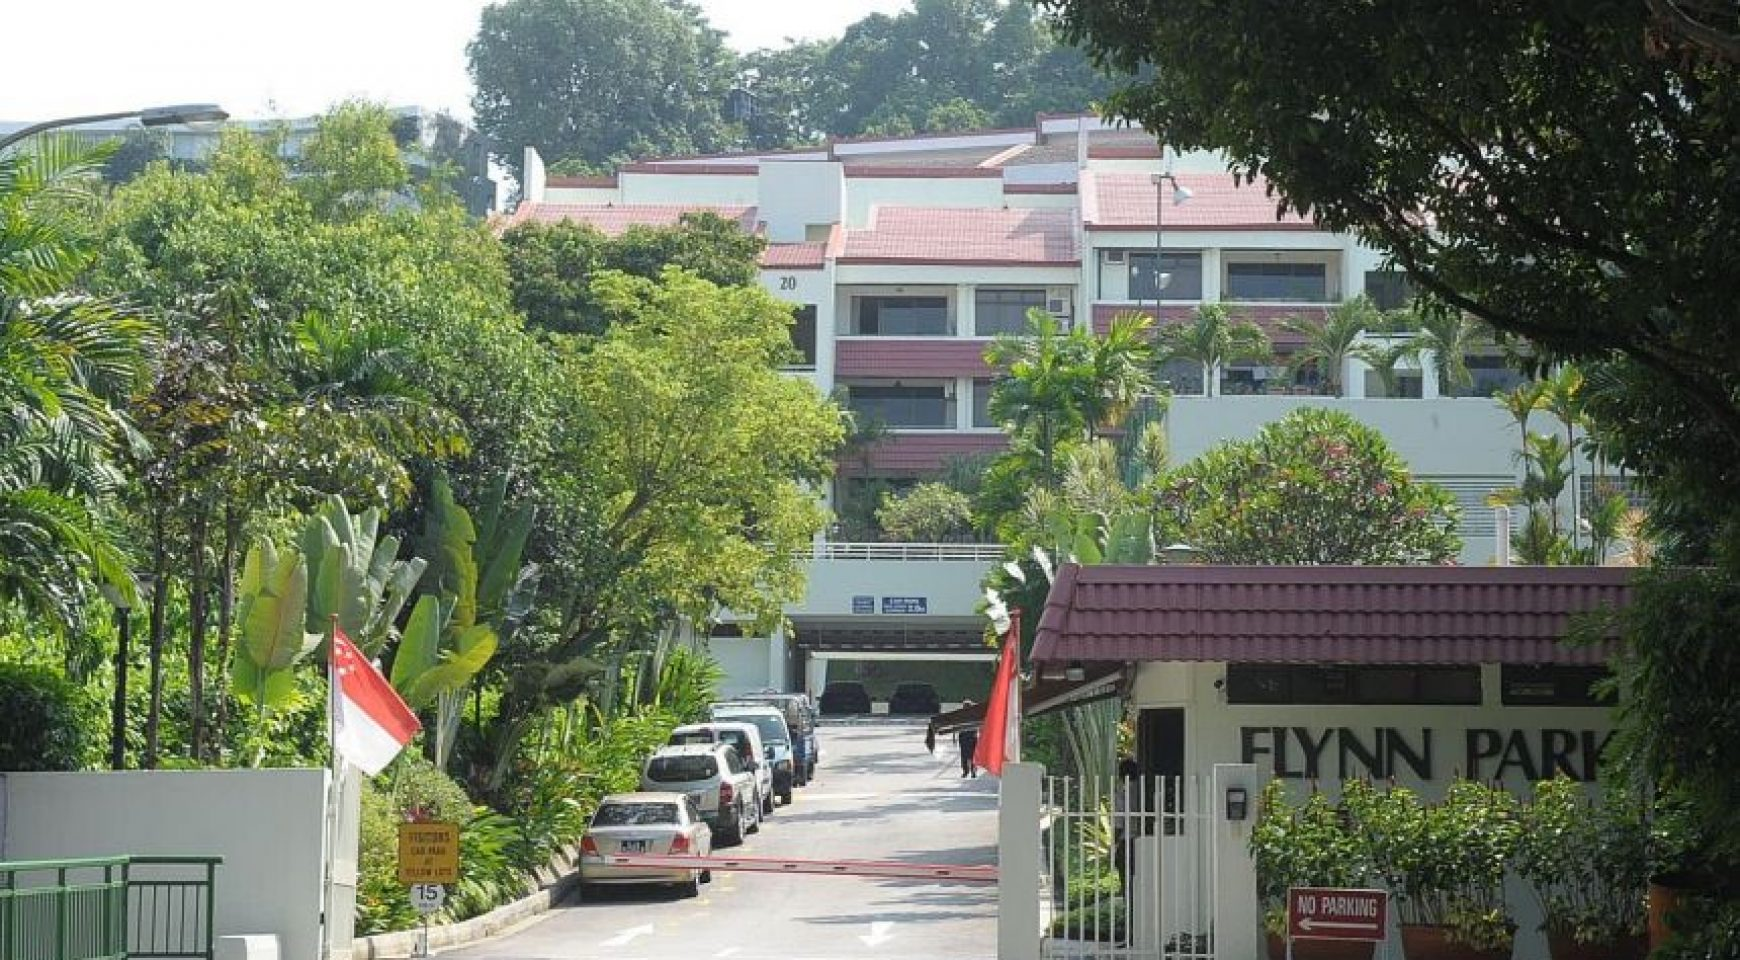 Hoi Hup and Sunway jointly purchase Flynn Park en bloc for RM1.14b